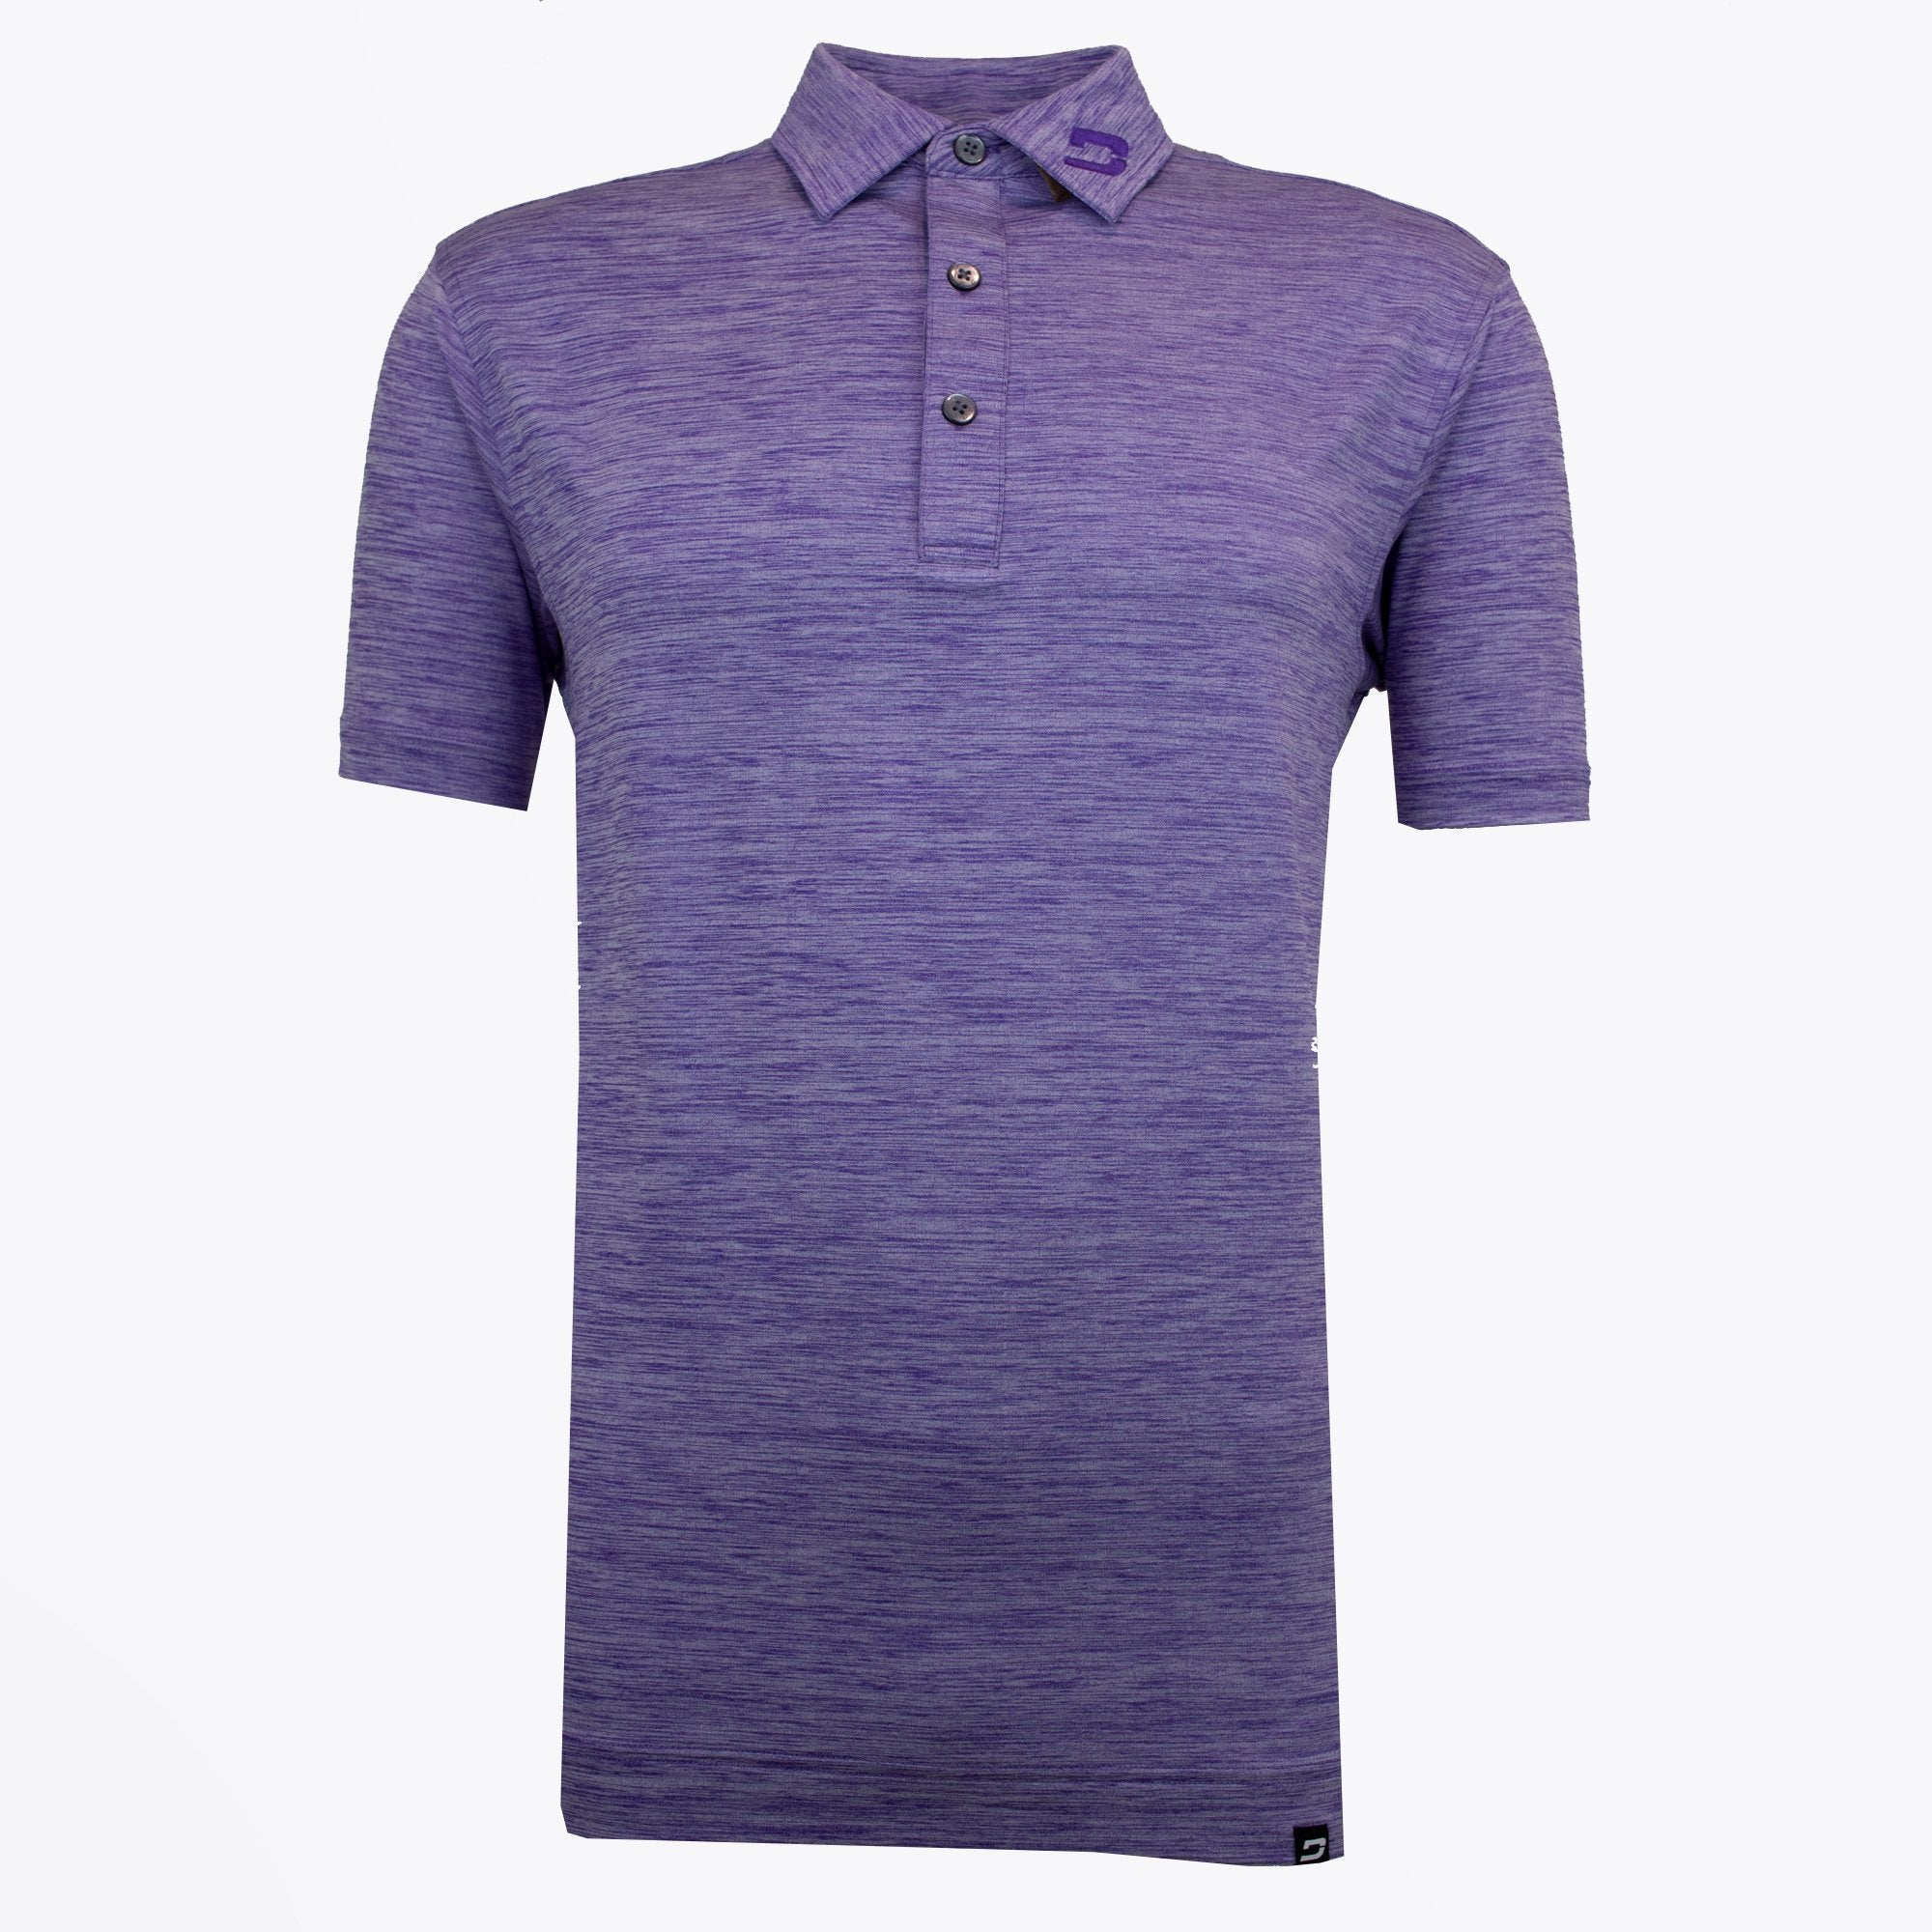 Druids Golf - Mens Flek Polo (Lavendar)